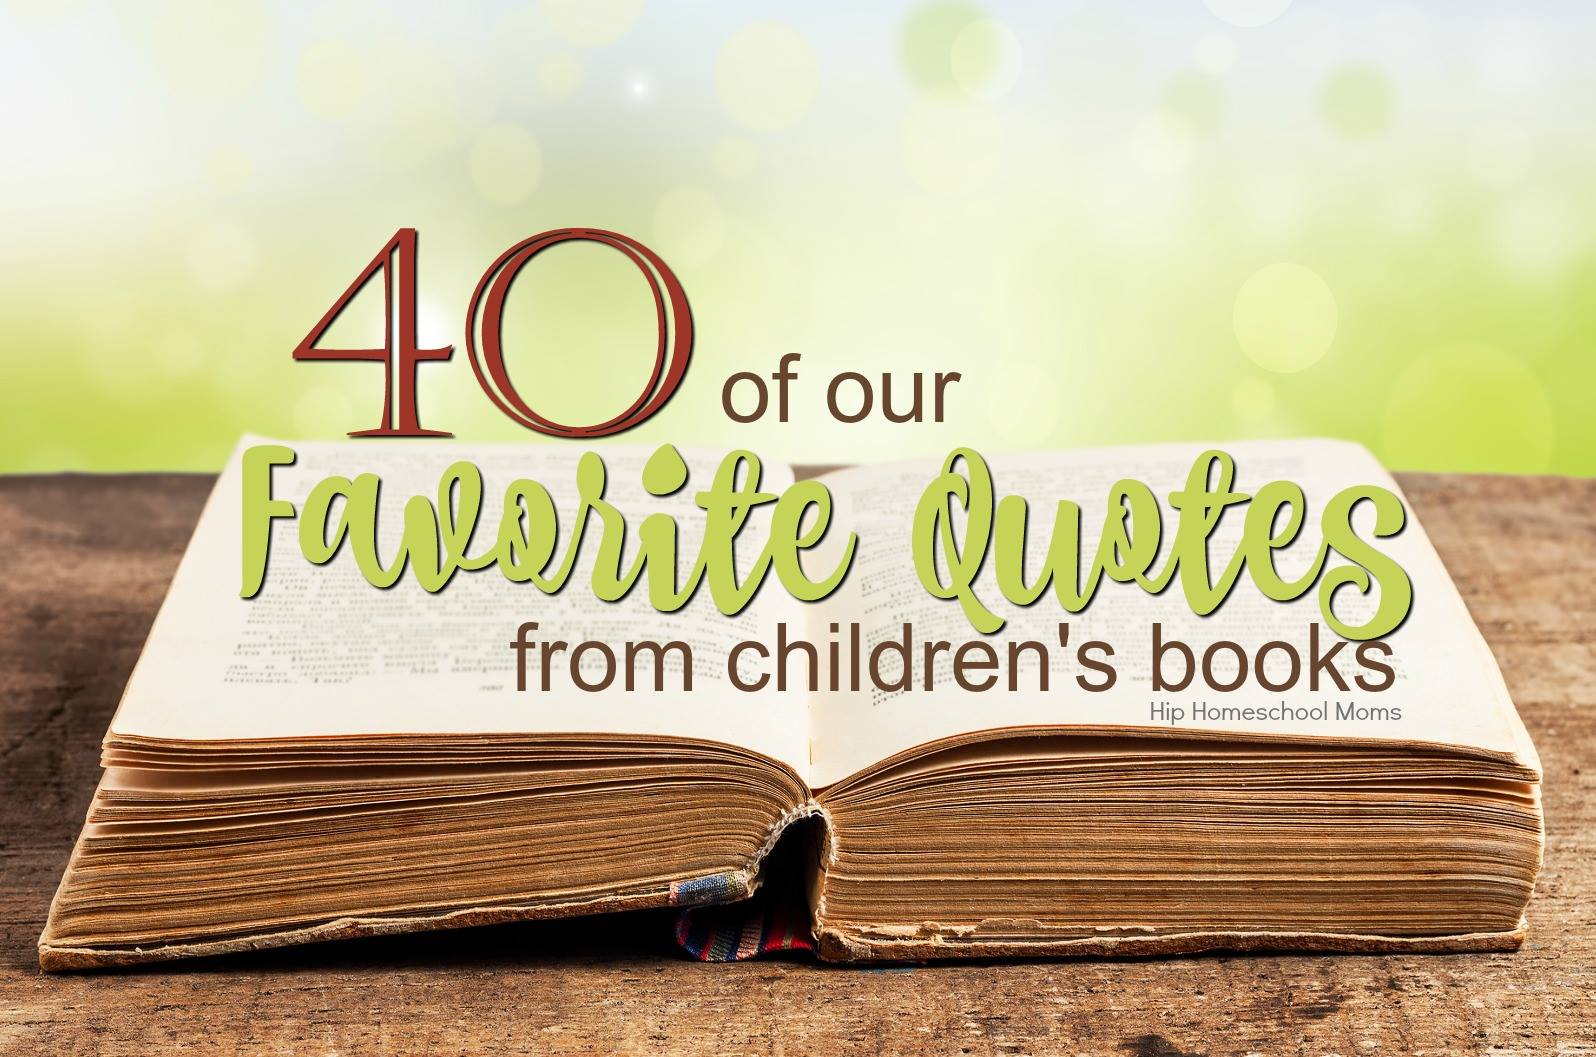 quotes books favorite children childrens homeschool moms hiphomeschoolmoms hhm re